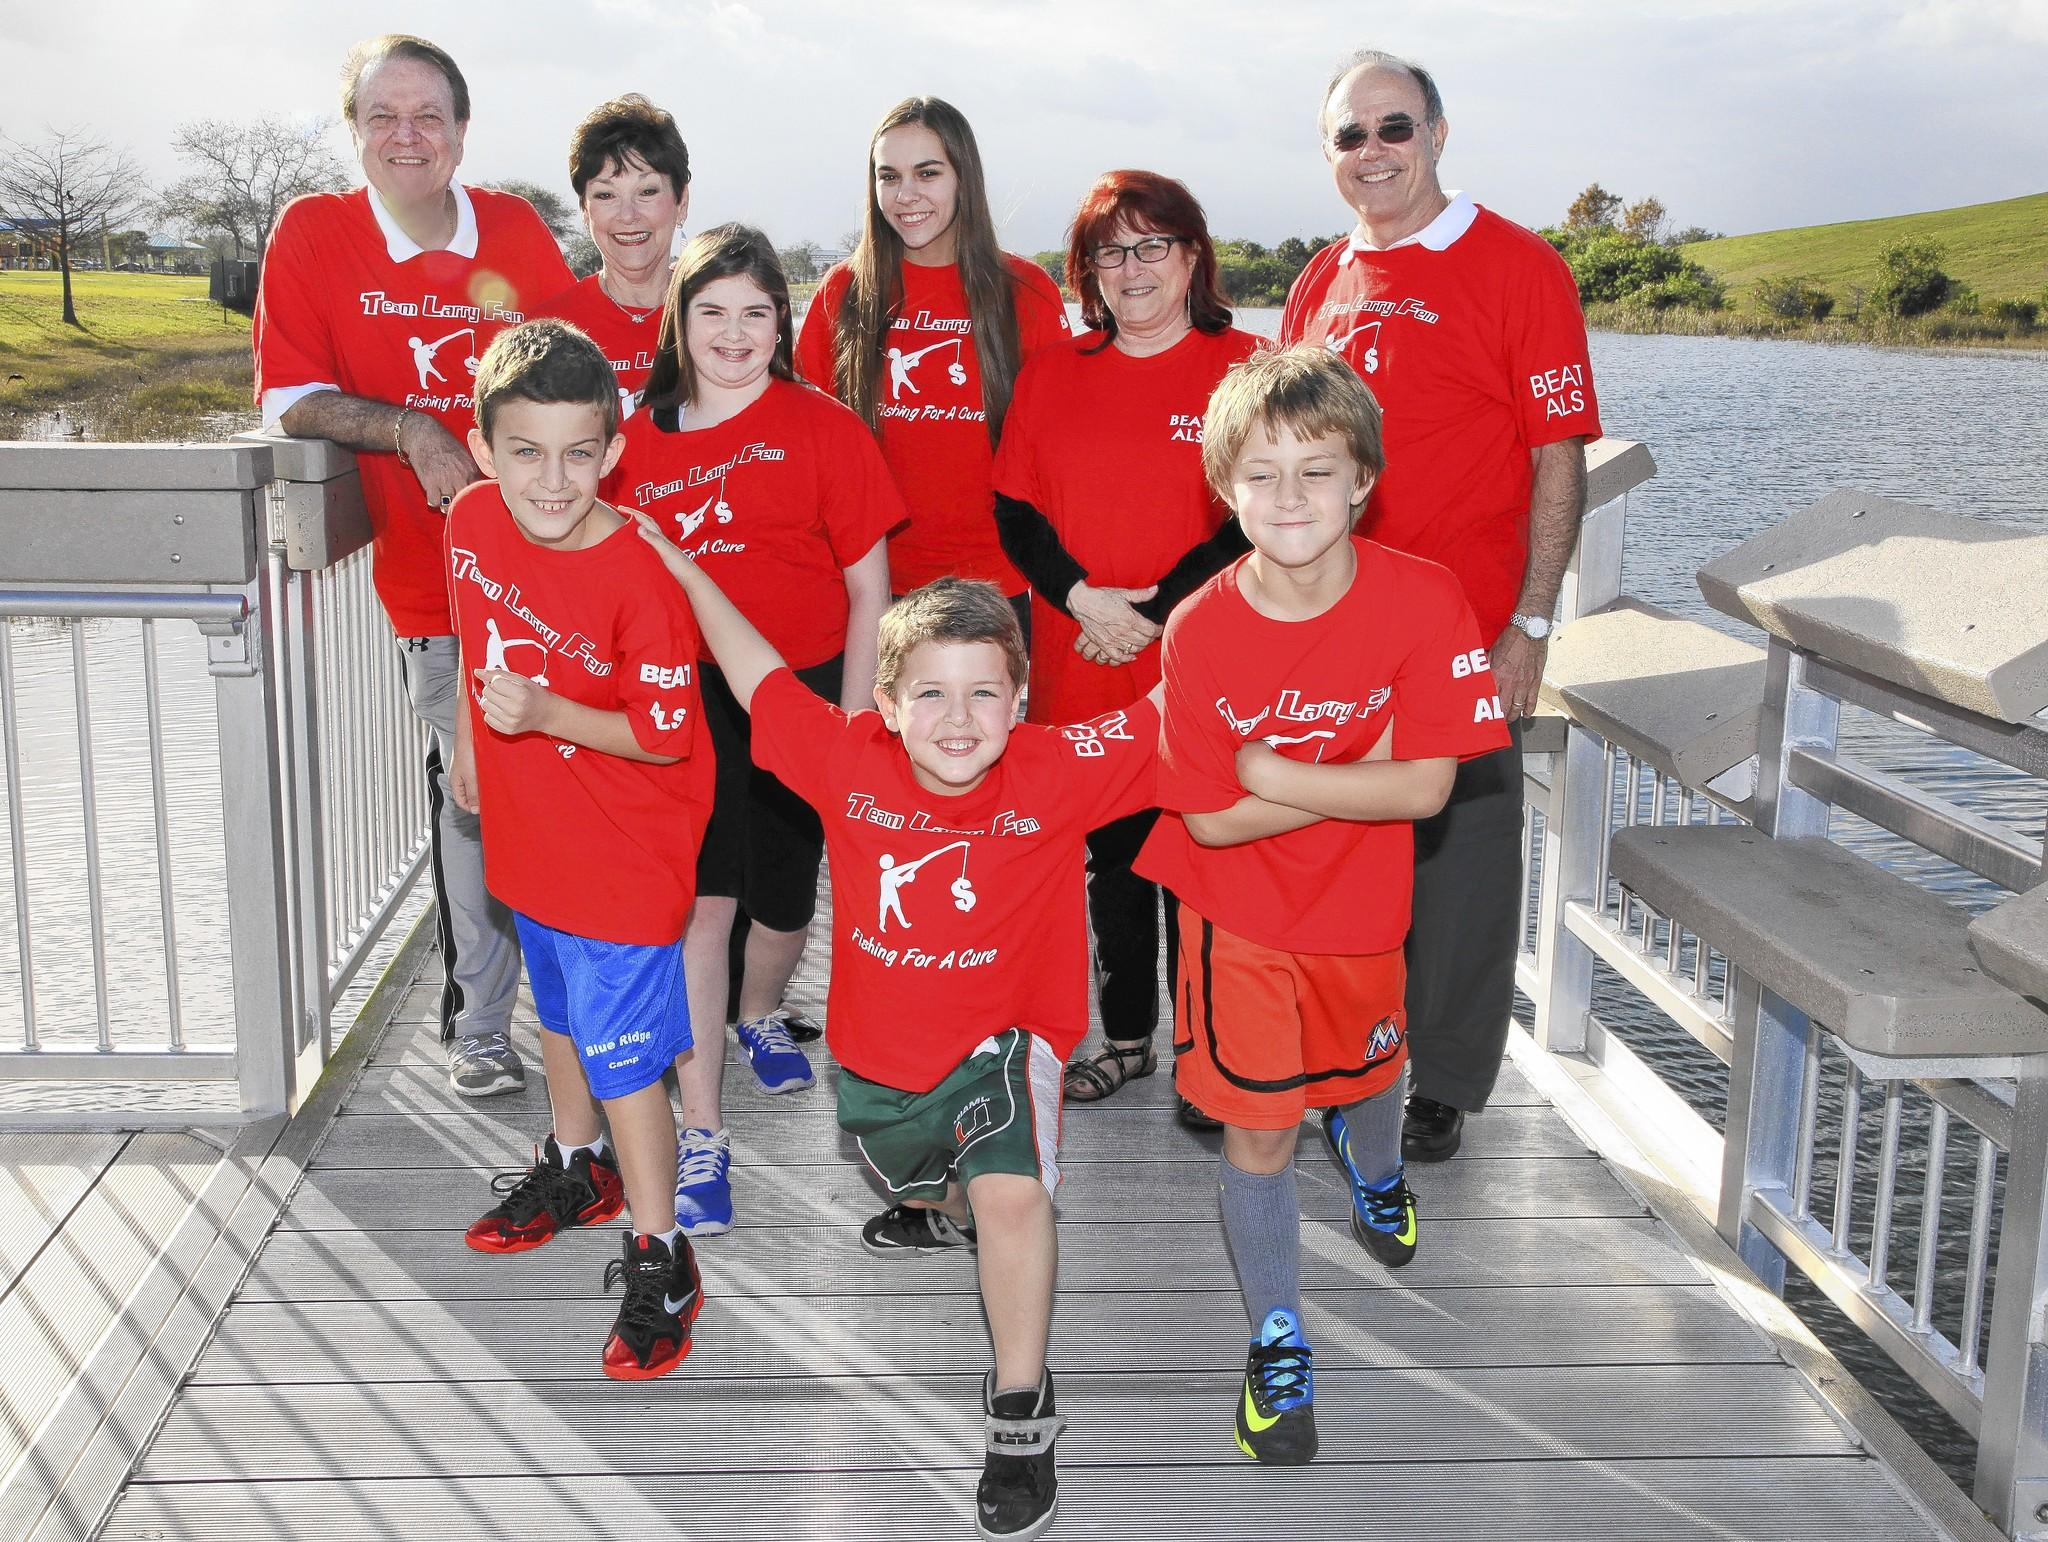 Harris Aversa, 10, left; Parker Aversa, 5, Blake Aversa, 8, back, Joe Aversa, Linda Aversa, Hannah Aversa, 11, Francesca Marinello, 14, Nancy Green and Launcy Pearson